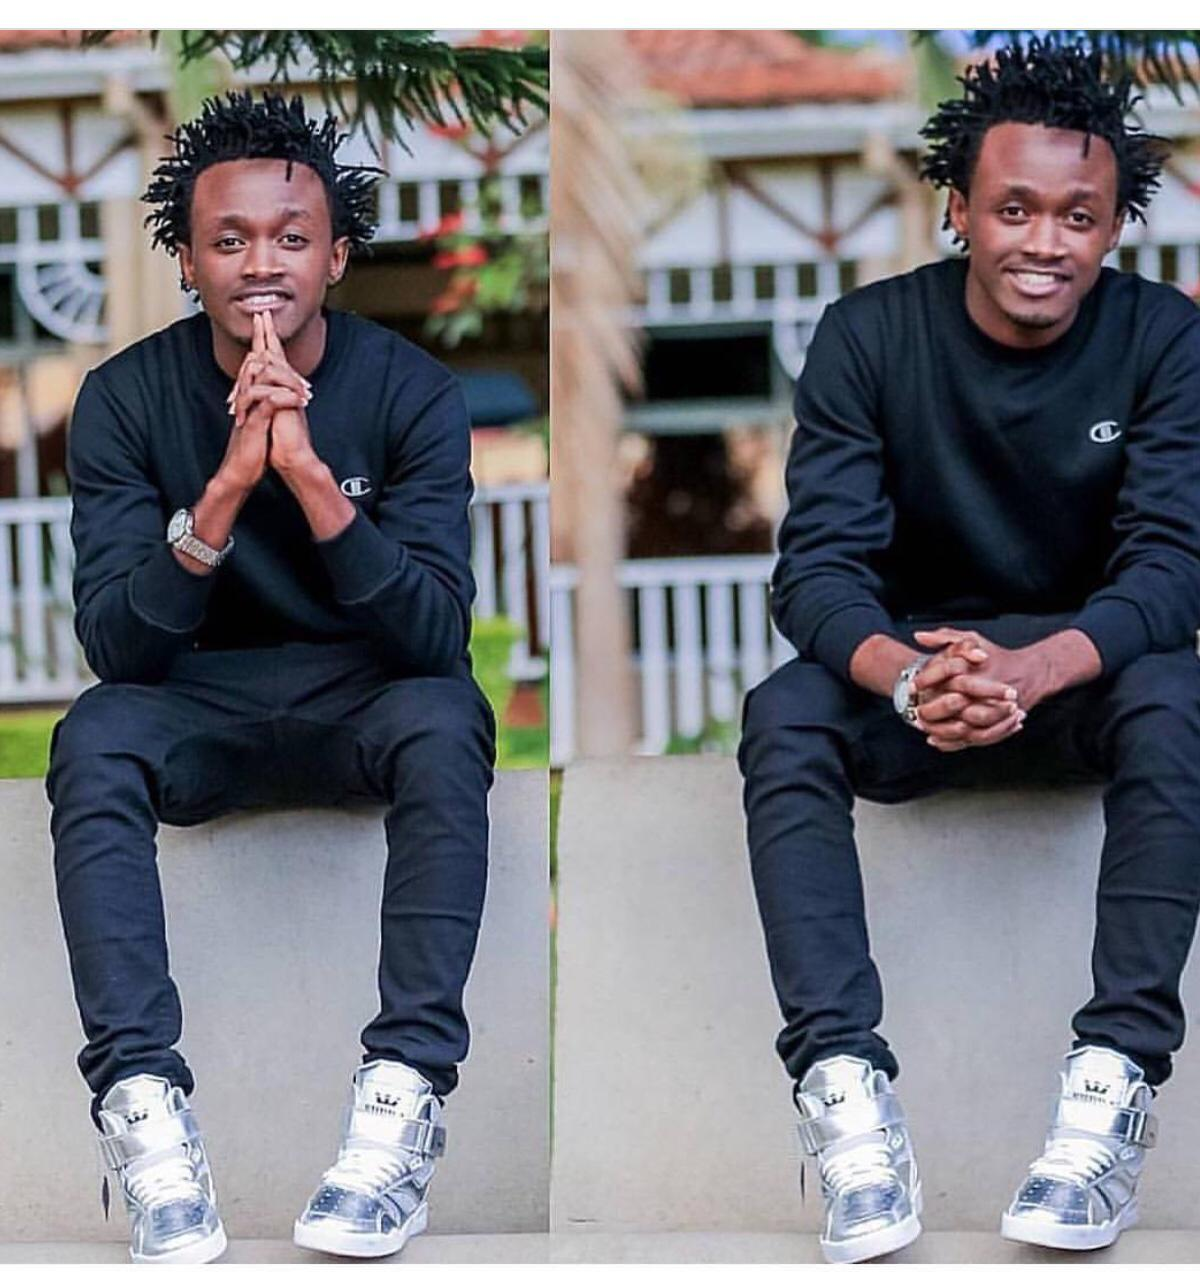 IMG 20180216 WA0020 - Kenya's youngest celebrity stylist. He has worked with Willy Paul